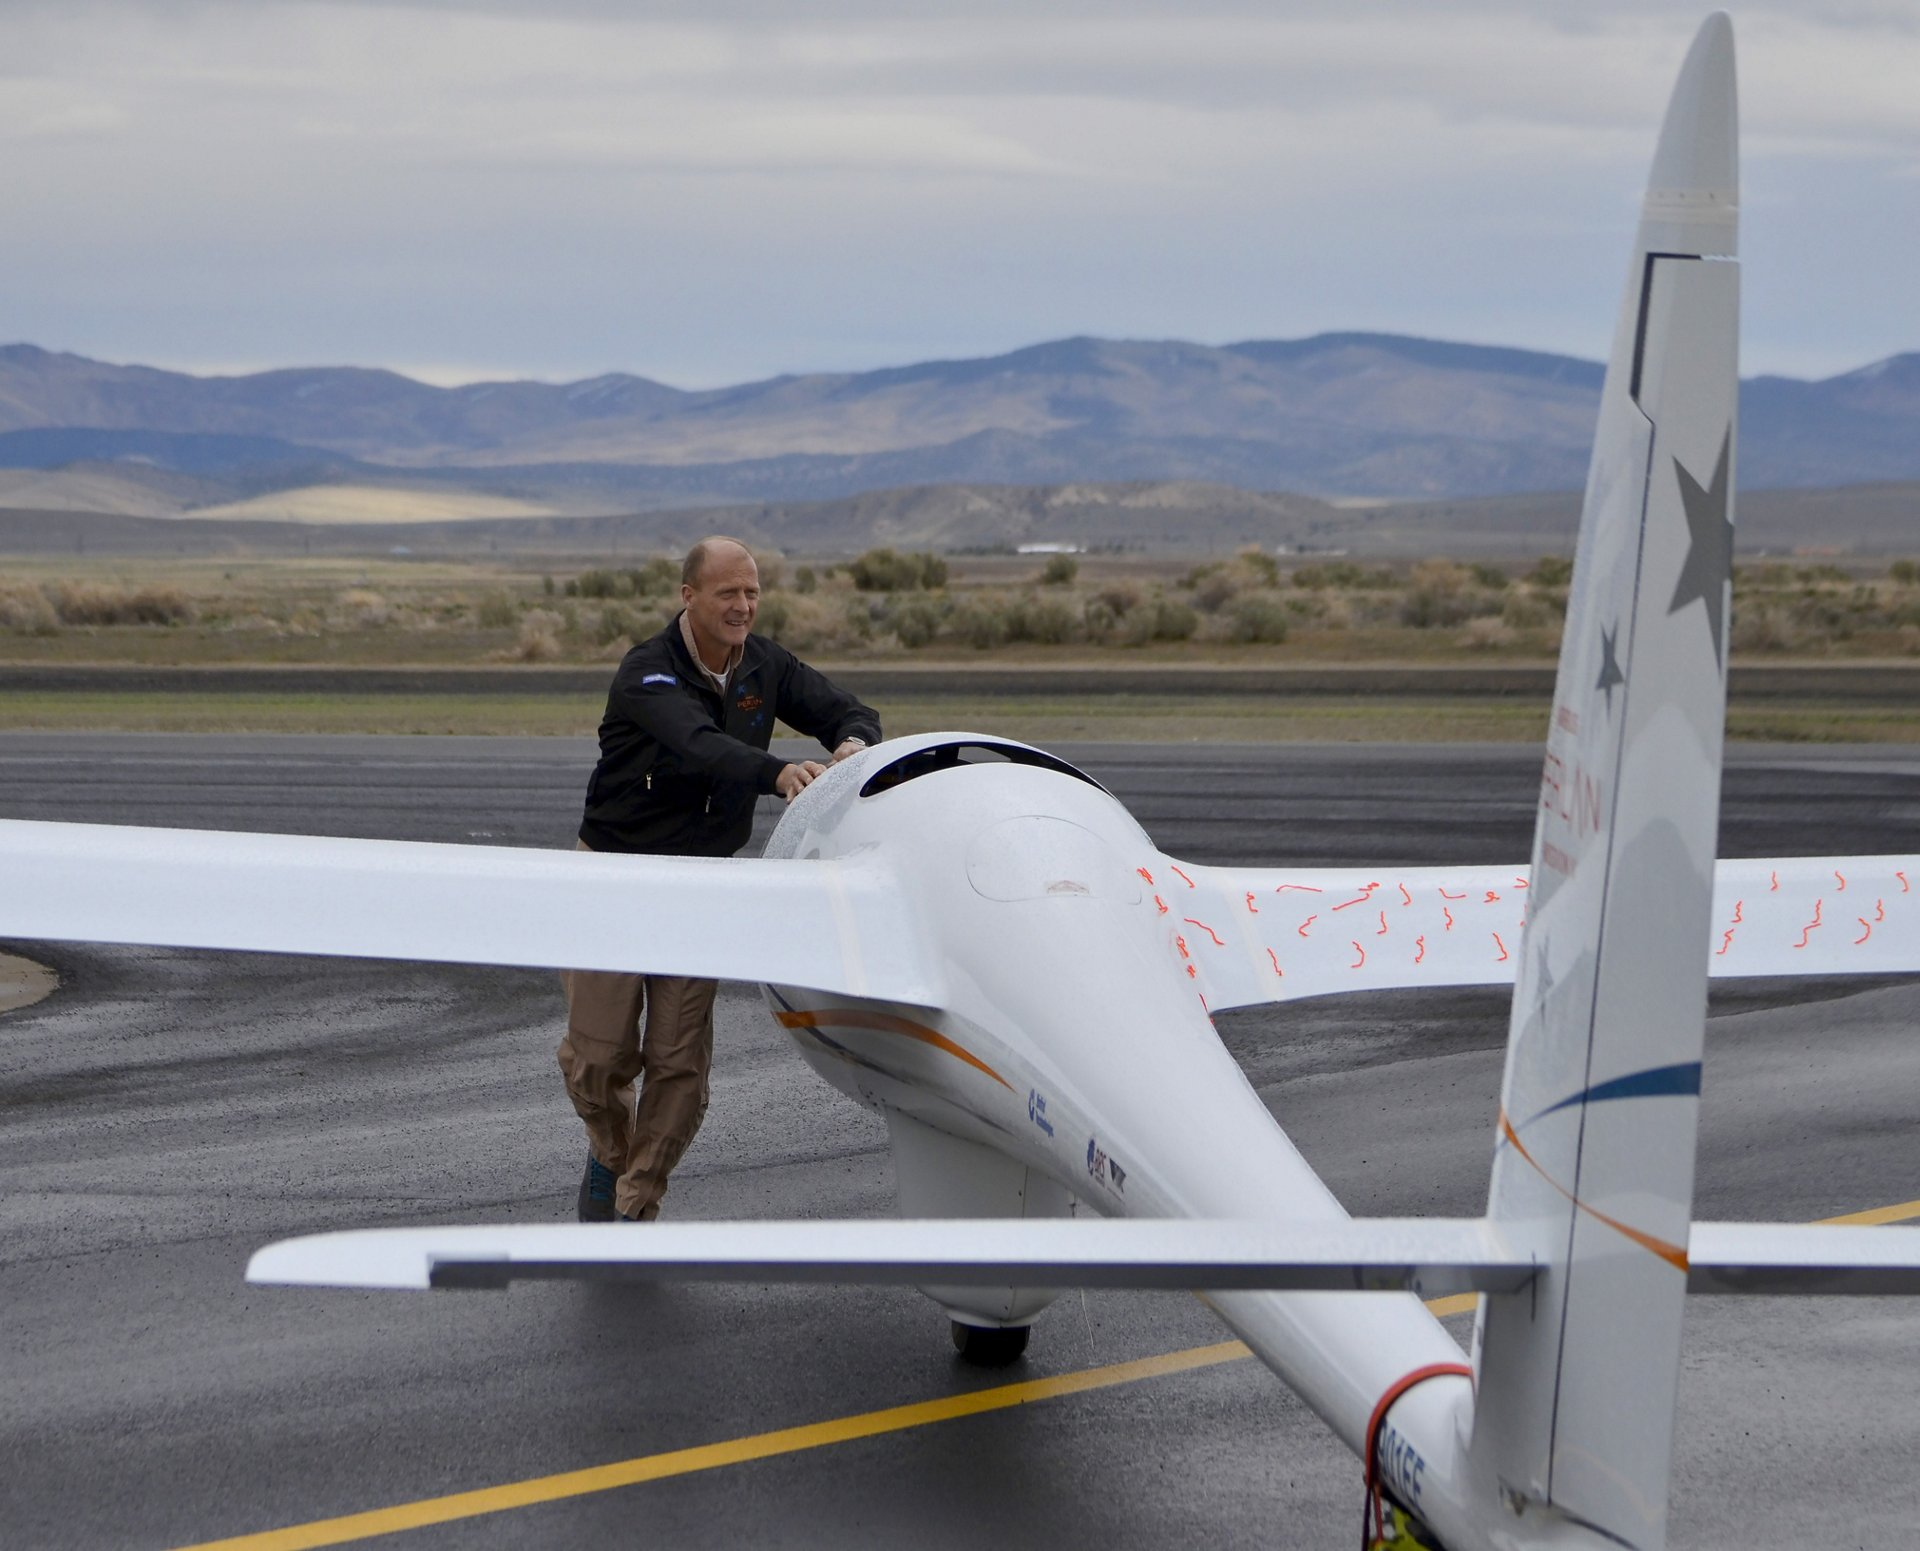 Airbus CEO Tom Enders worked alongside the Perlan 2 glider team in Nevada